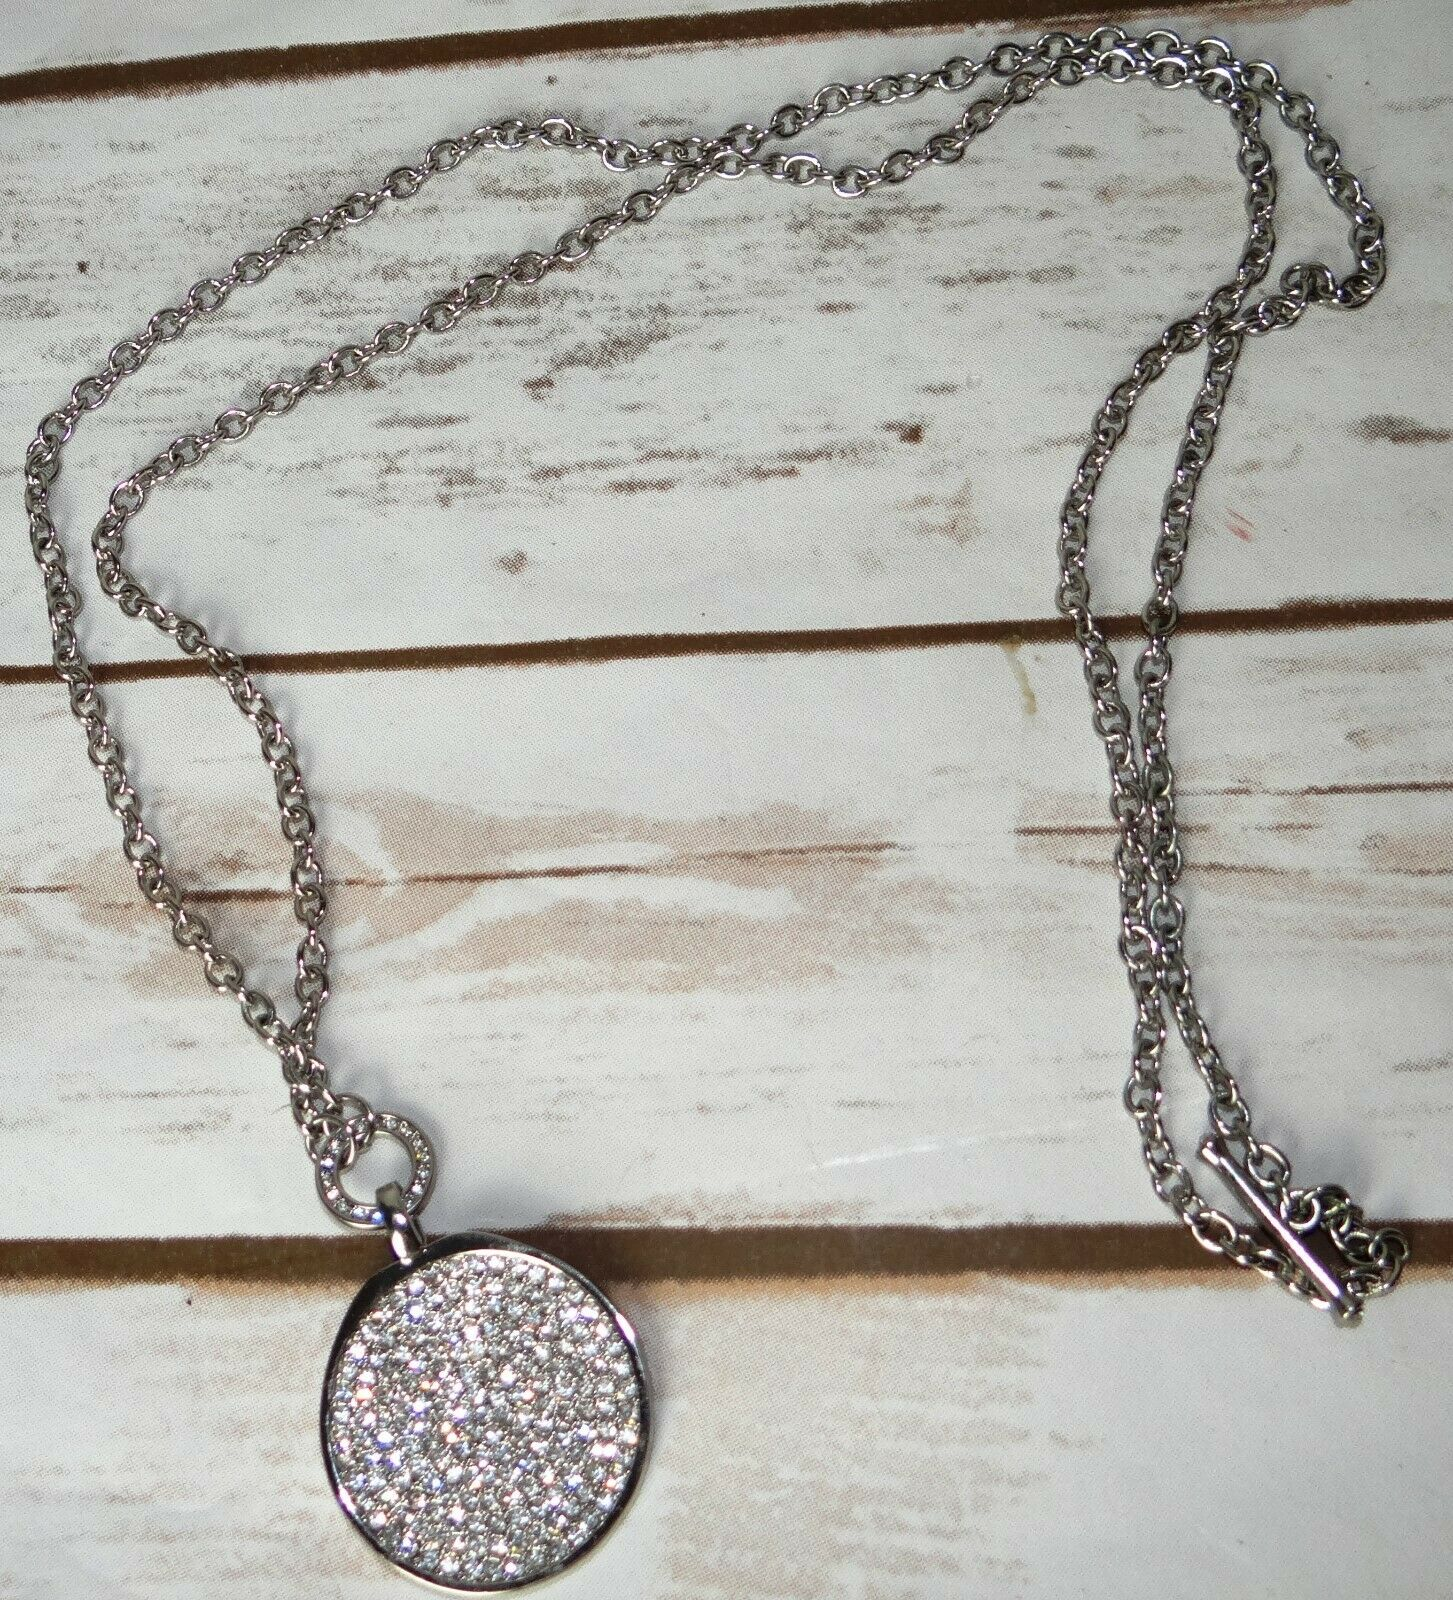 Carolee Goldtone Stand Up To Cancer S 2c Carnelain Arrow Charm Necklace For Sale Online Ebay See more of arrow chains on facebook. ebay